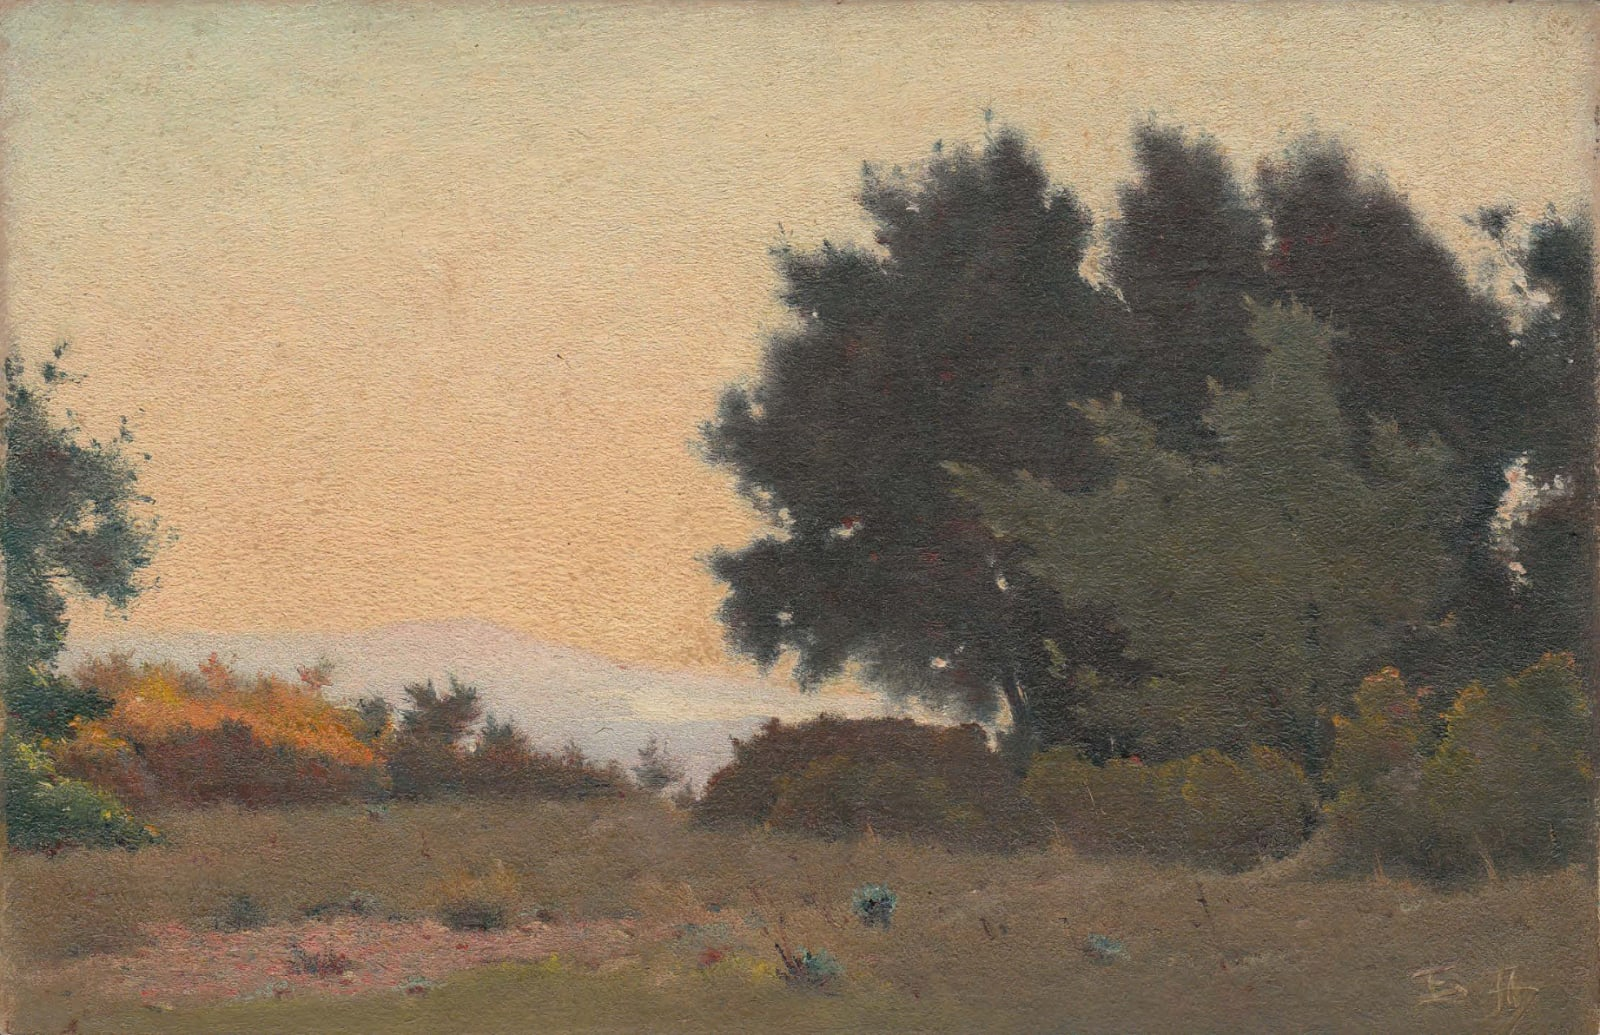 EDOUARD ATHÉNOSY, End of the day, 1917